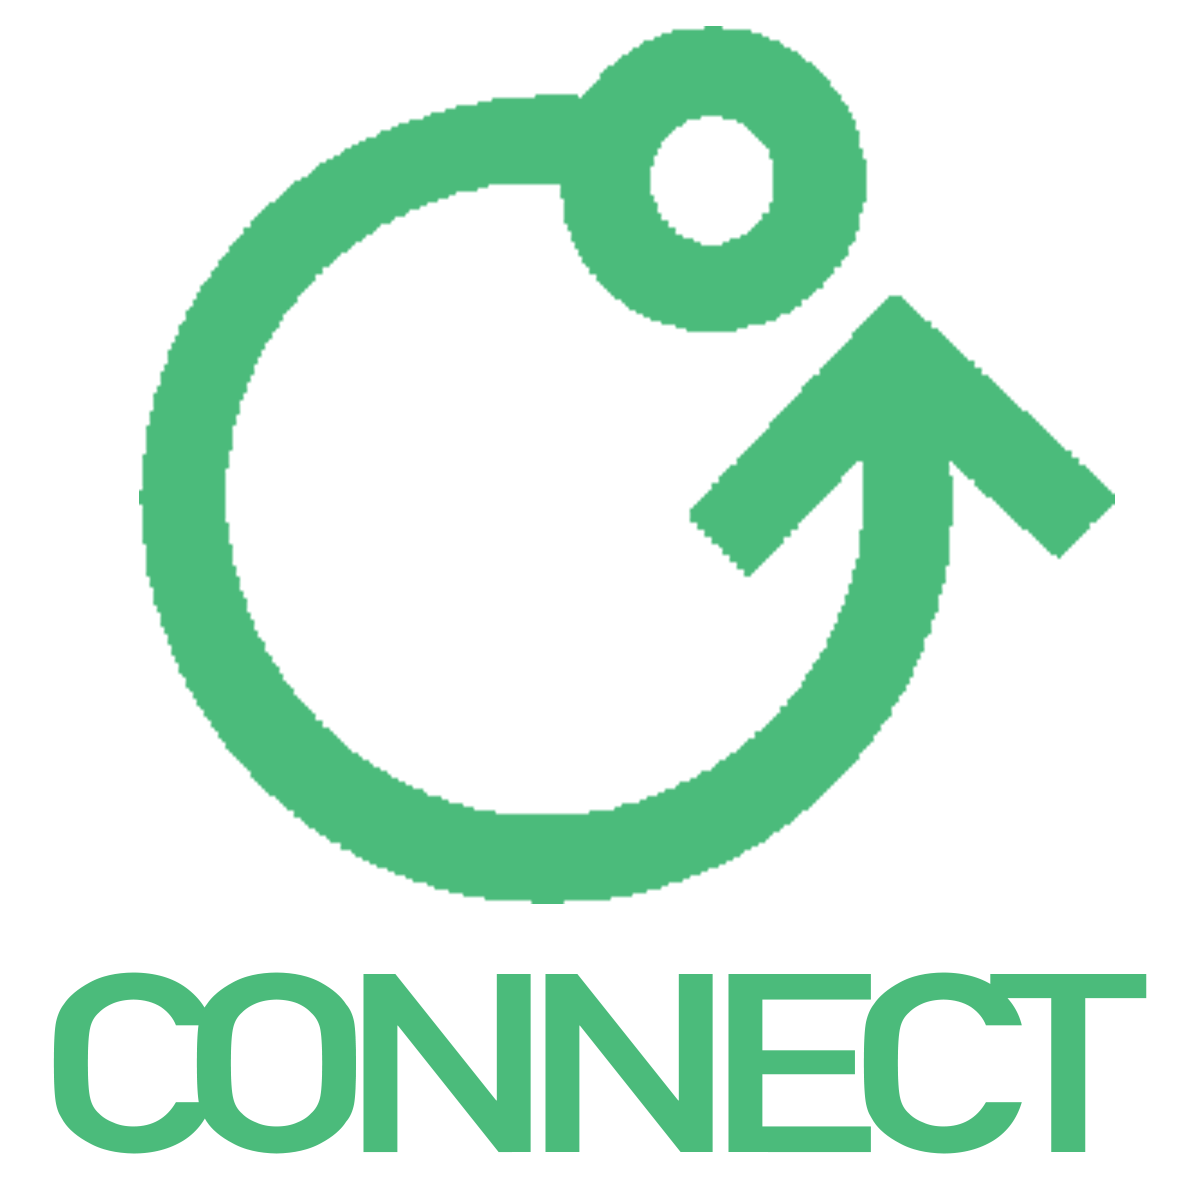 CONNECT-icon-community-church-games.png